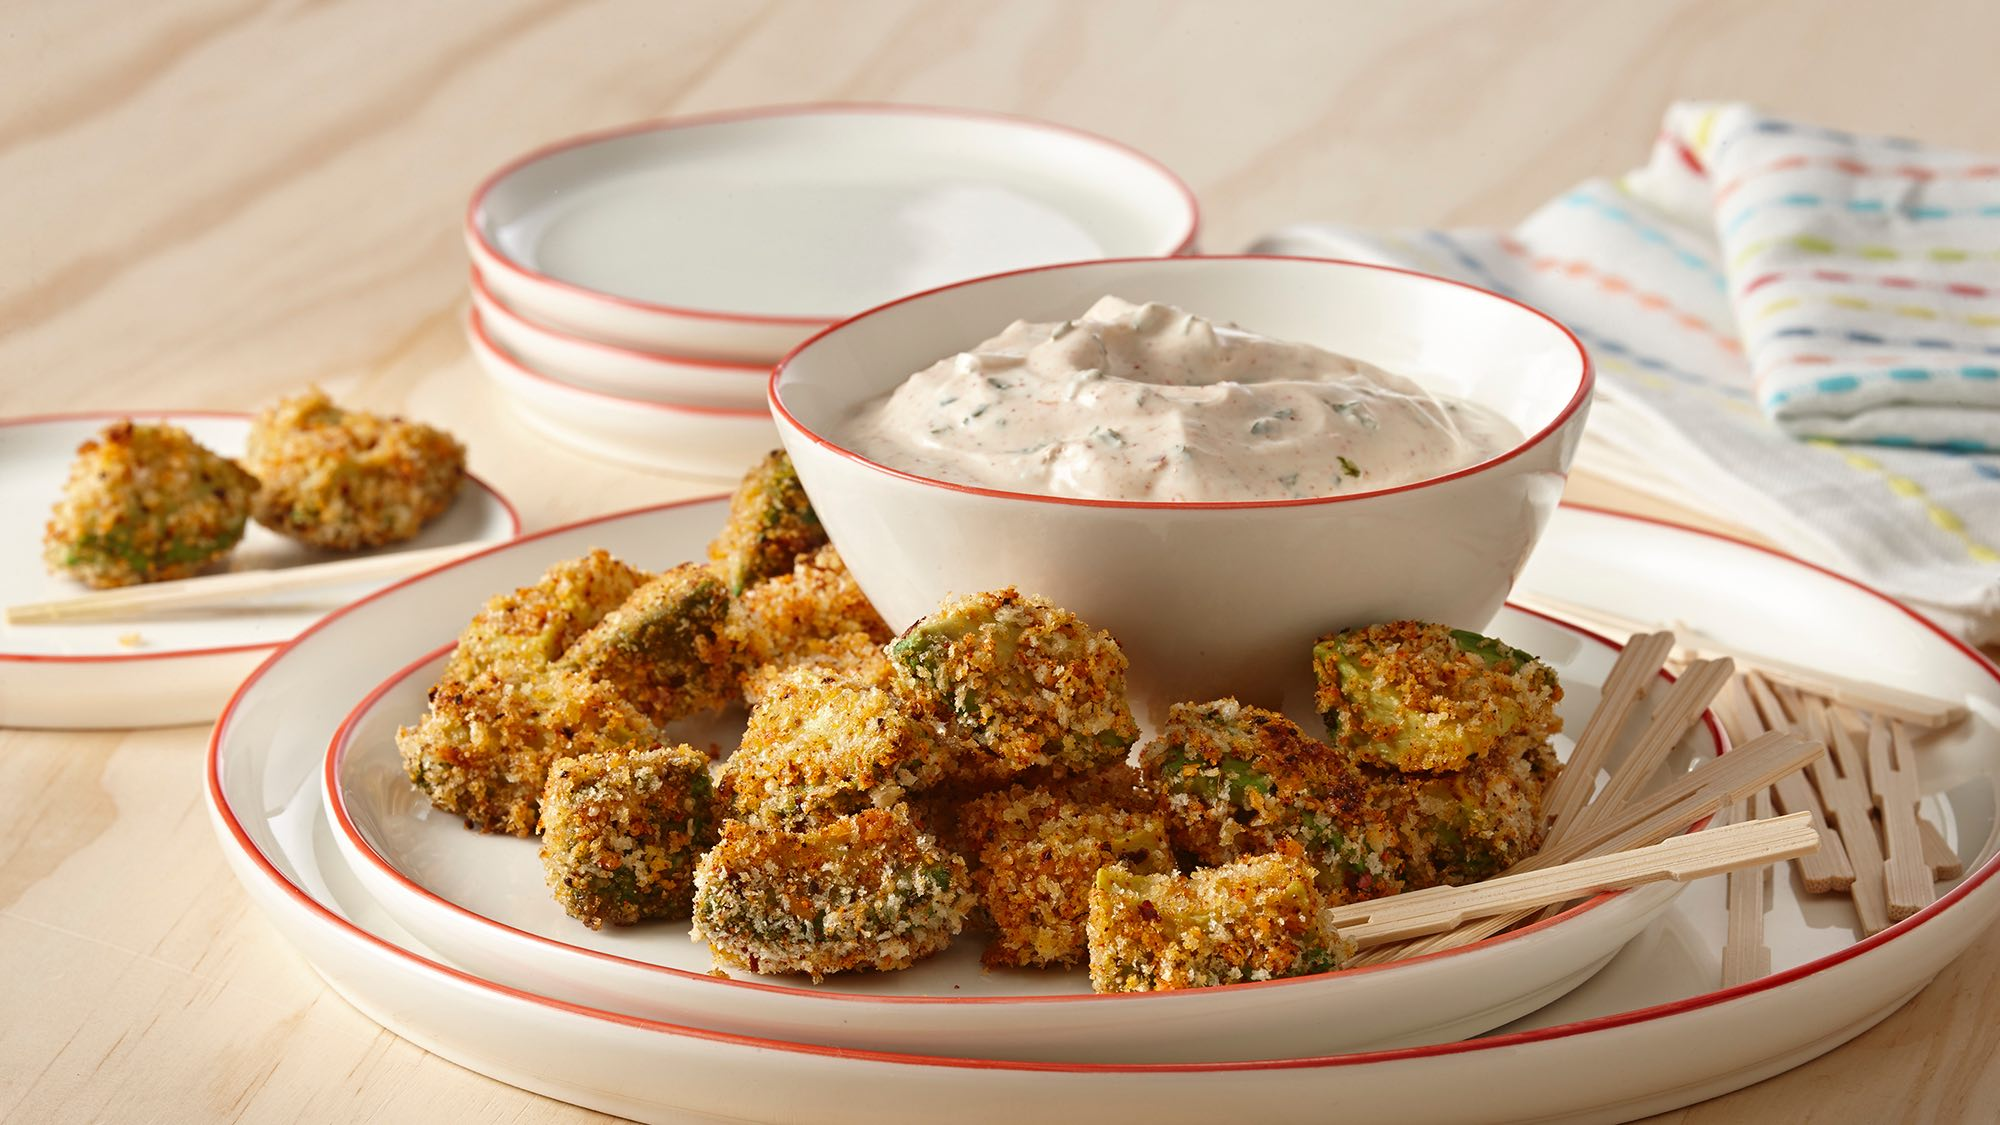 southwest-avocado-bites-with-yogurt-dipping-sauce.jpg